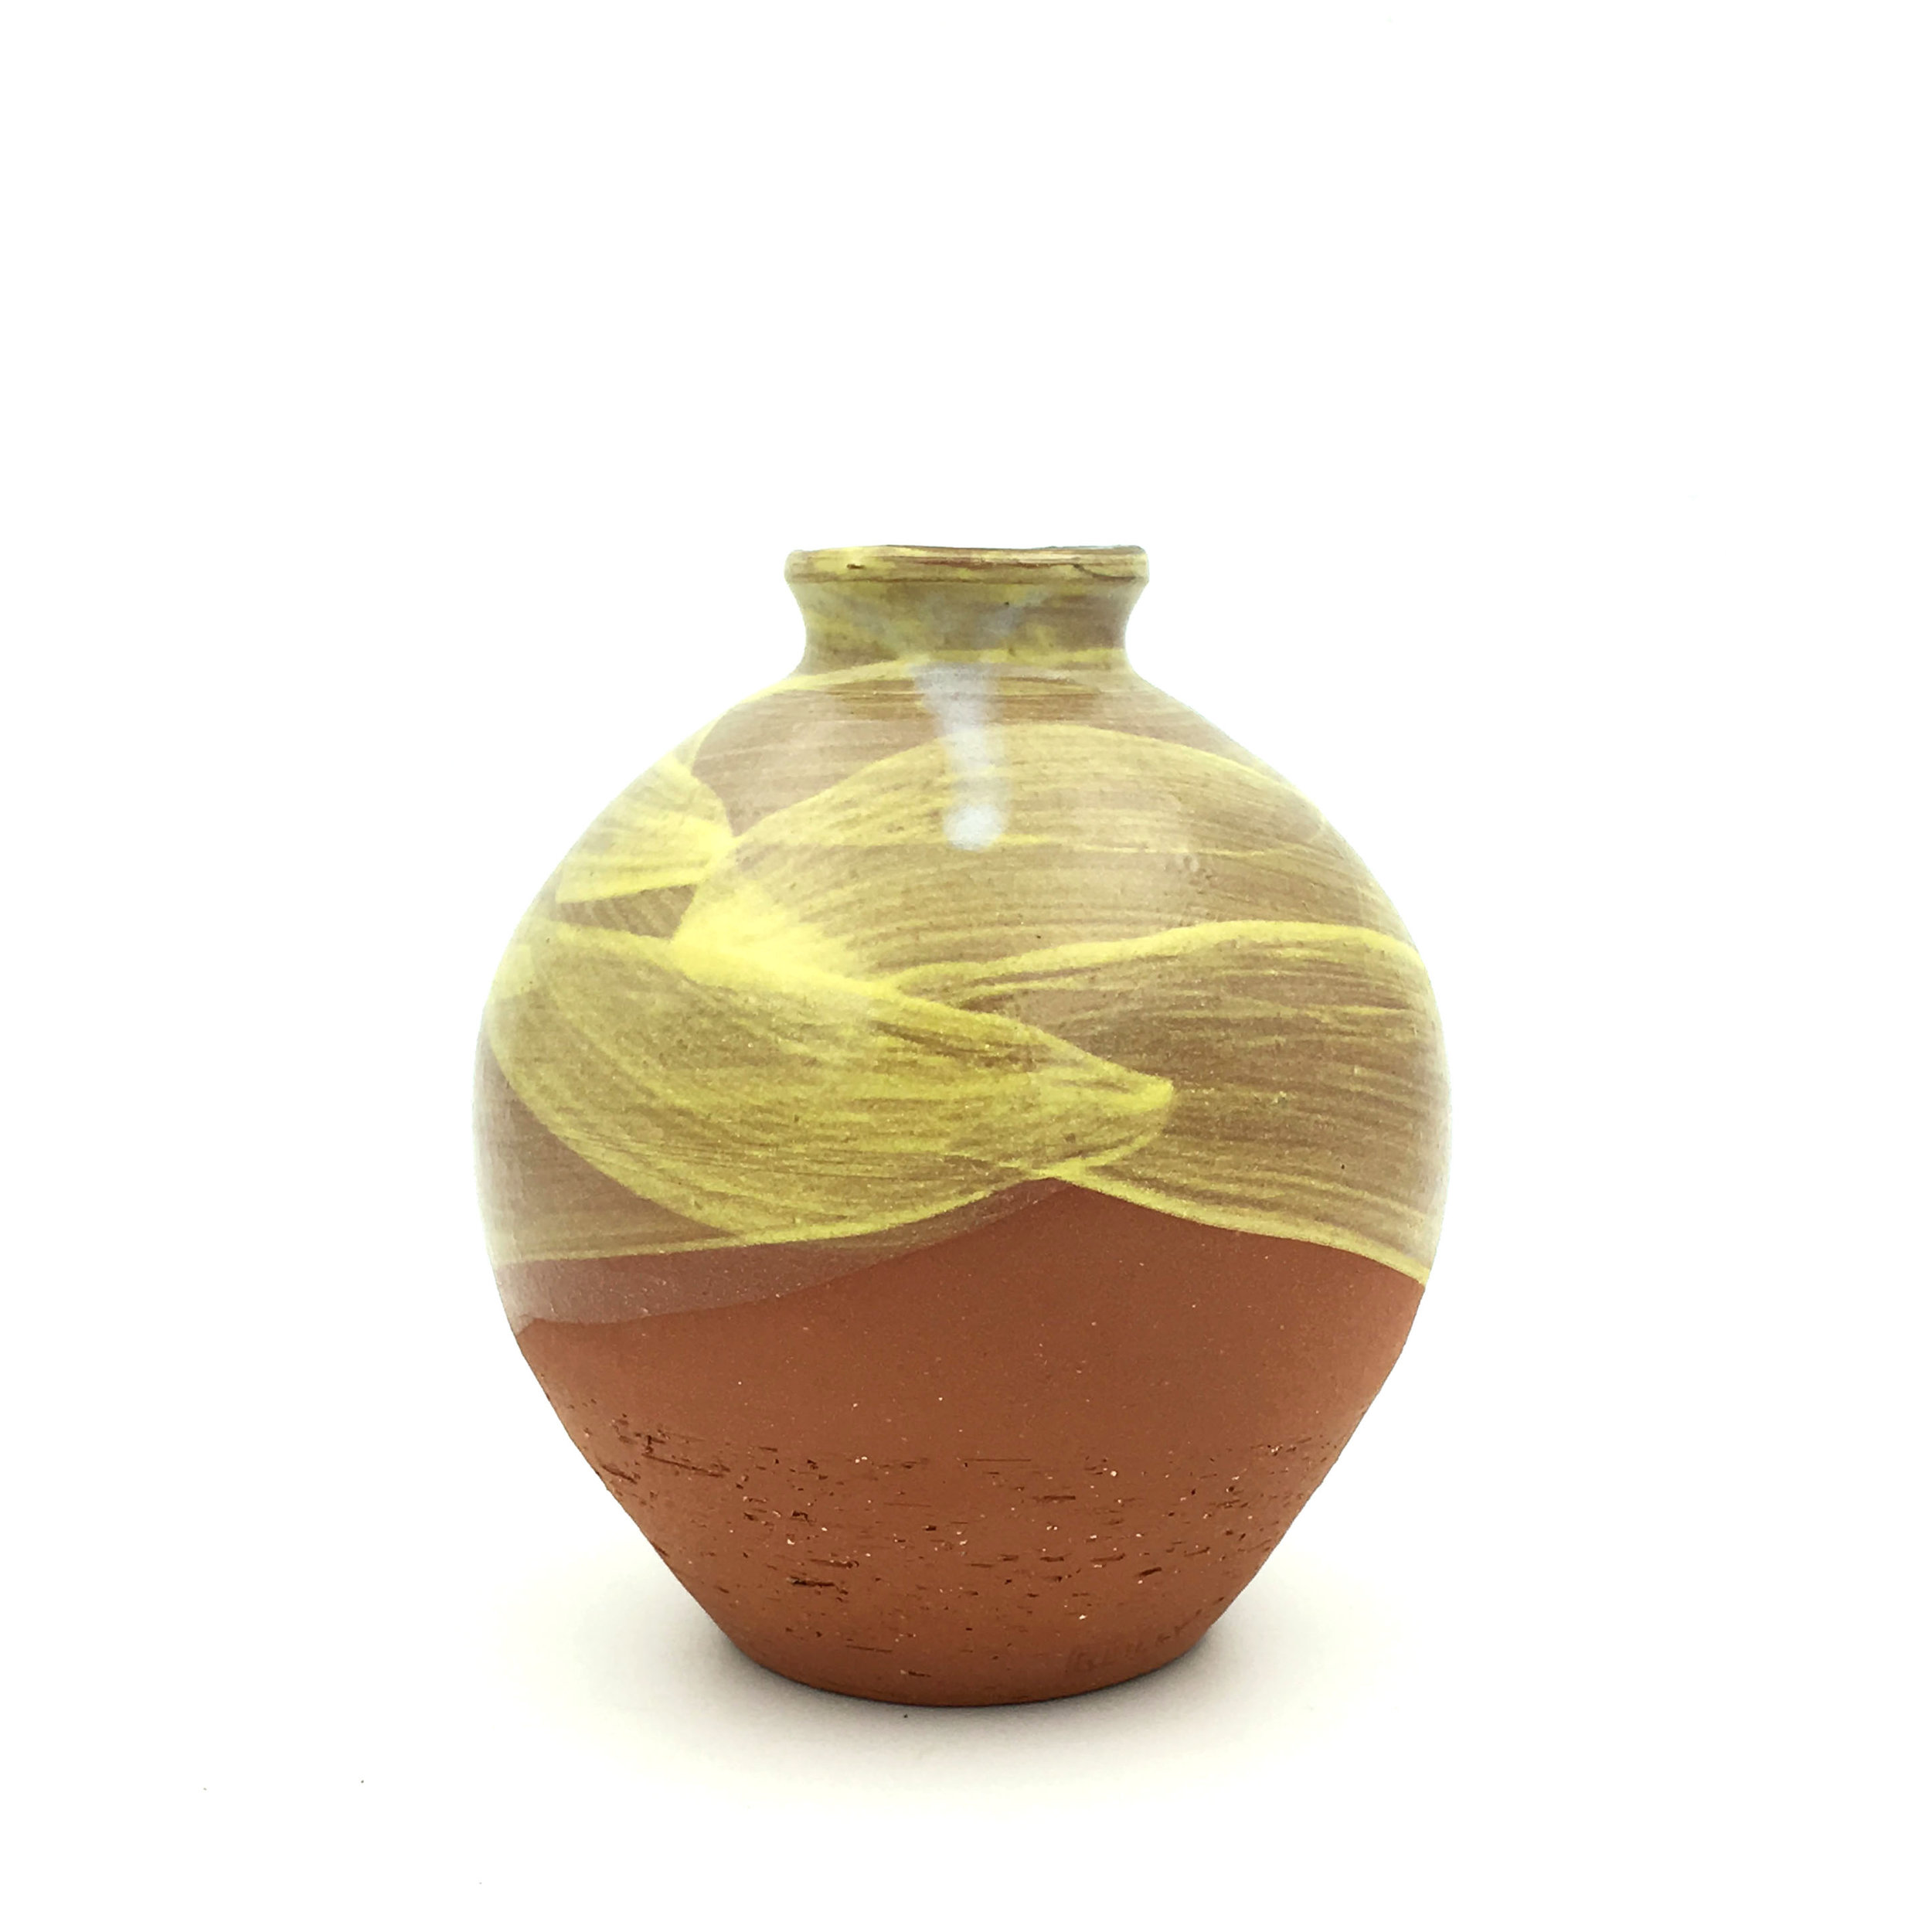 Bud Vase , earthenware with gold luster, 2017